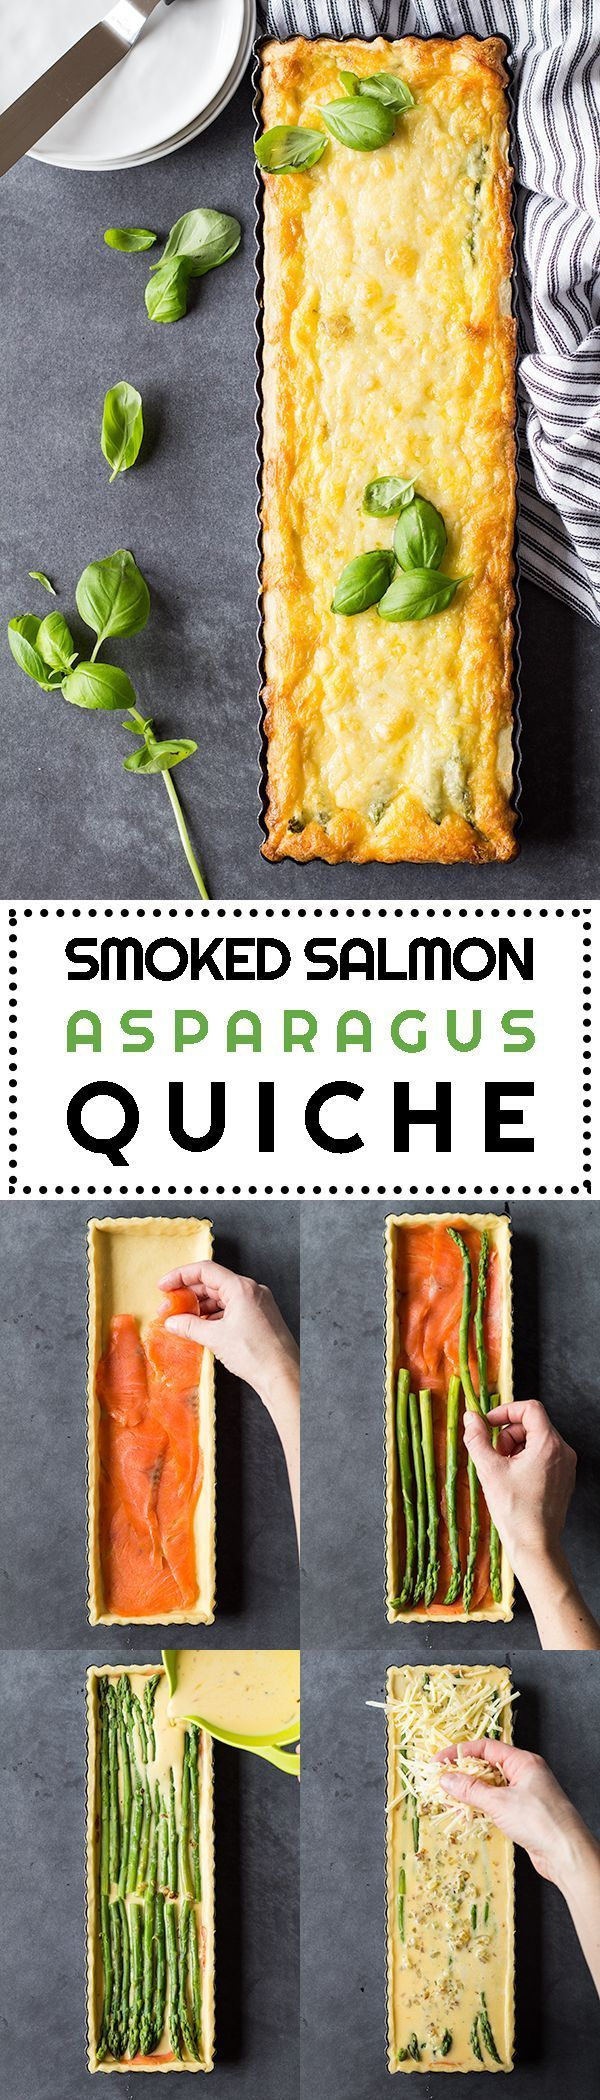 Smoked Salmon Asparagus Quiche